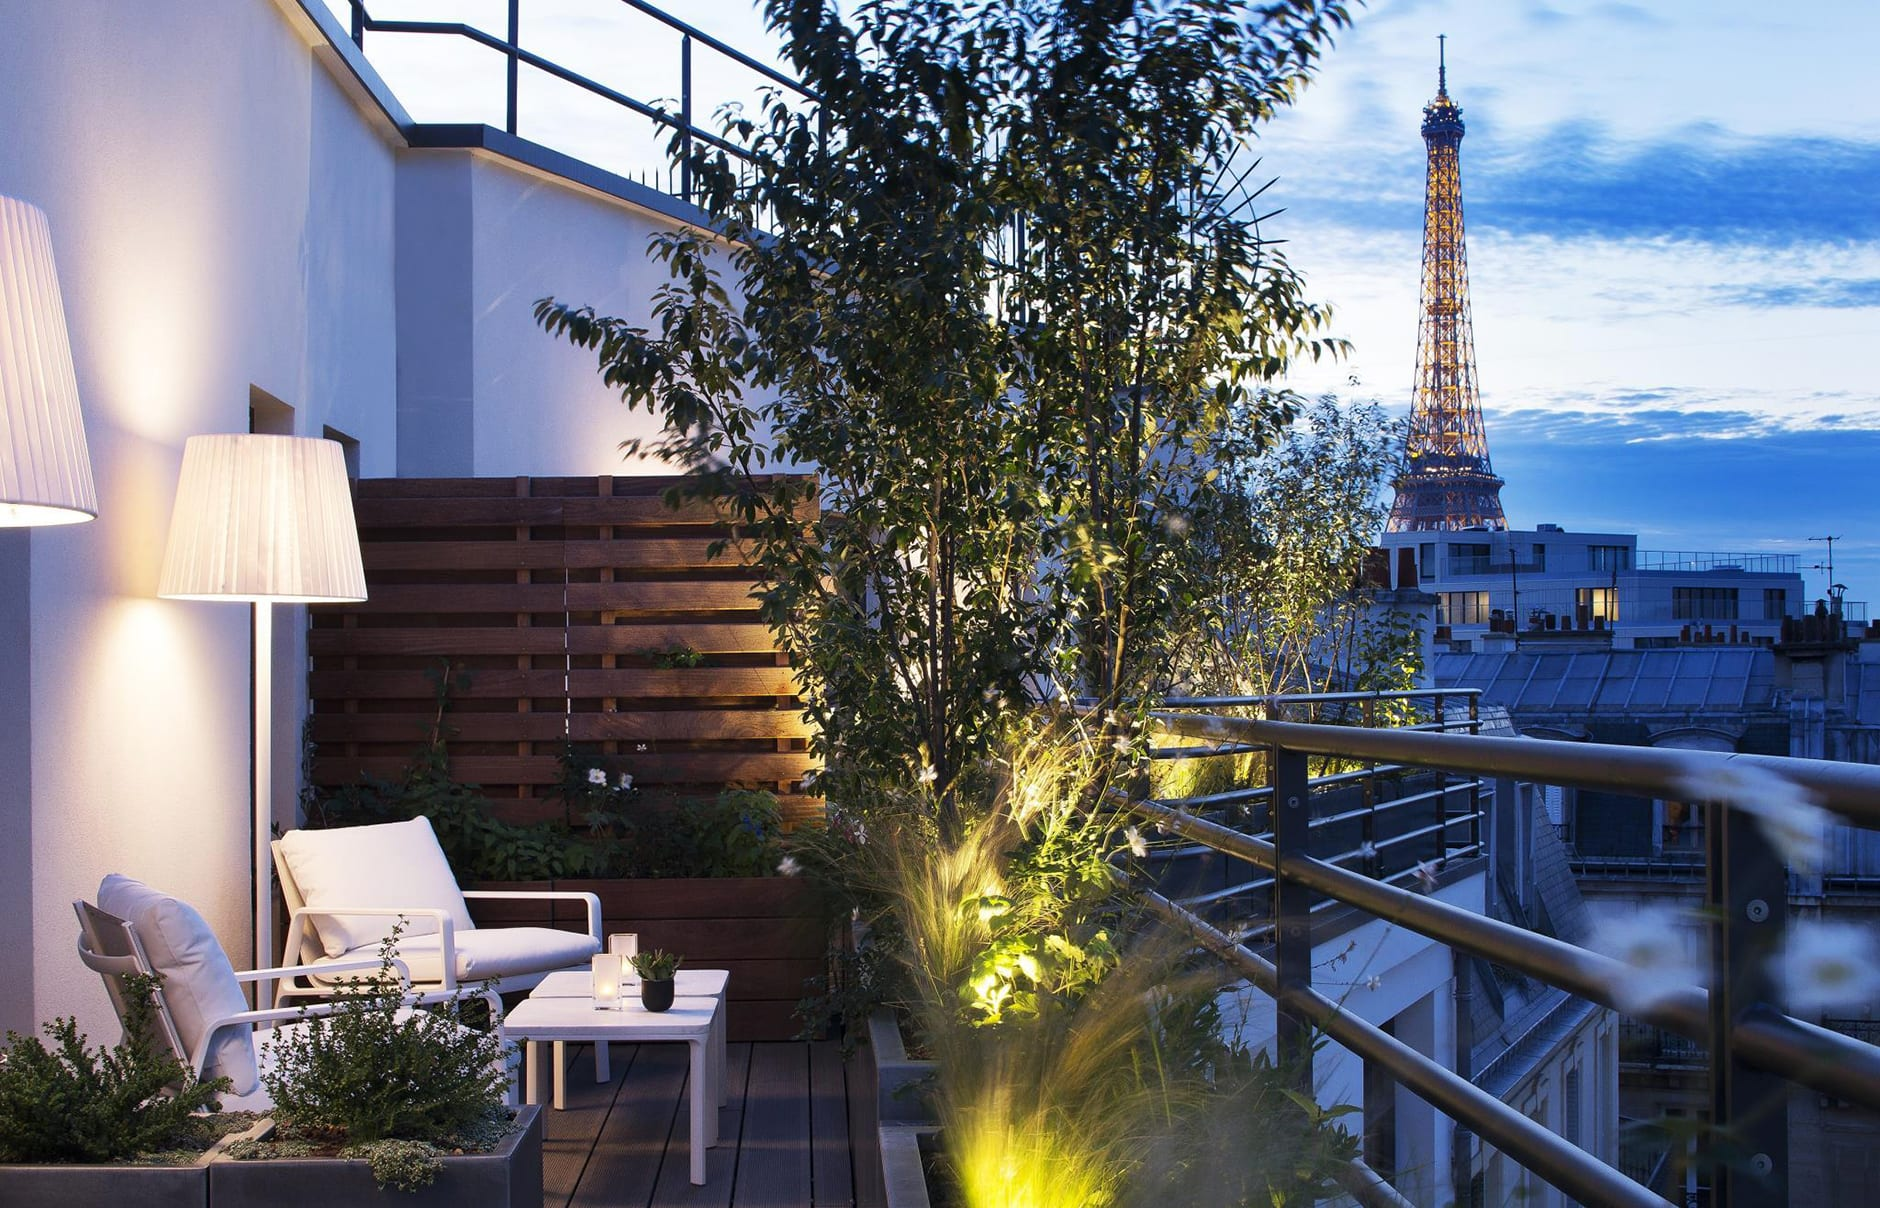 Le cinq codet paris luxury hotels travelplusstyle - Hotel le cinq codet ...